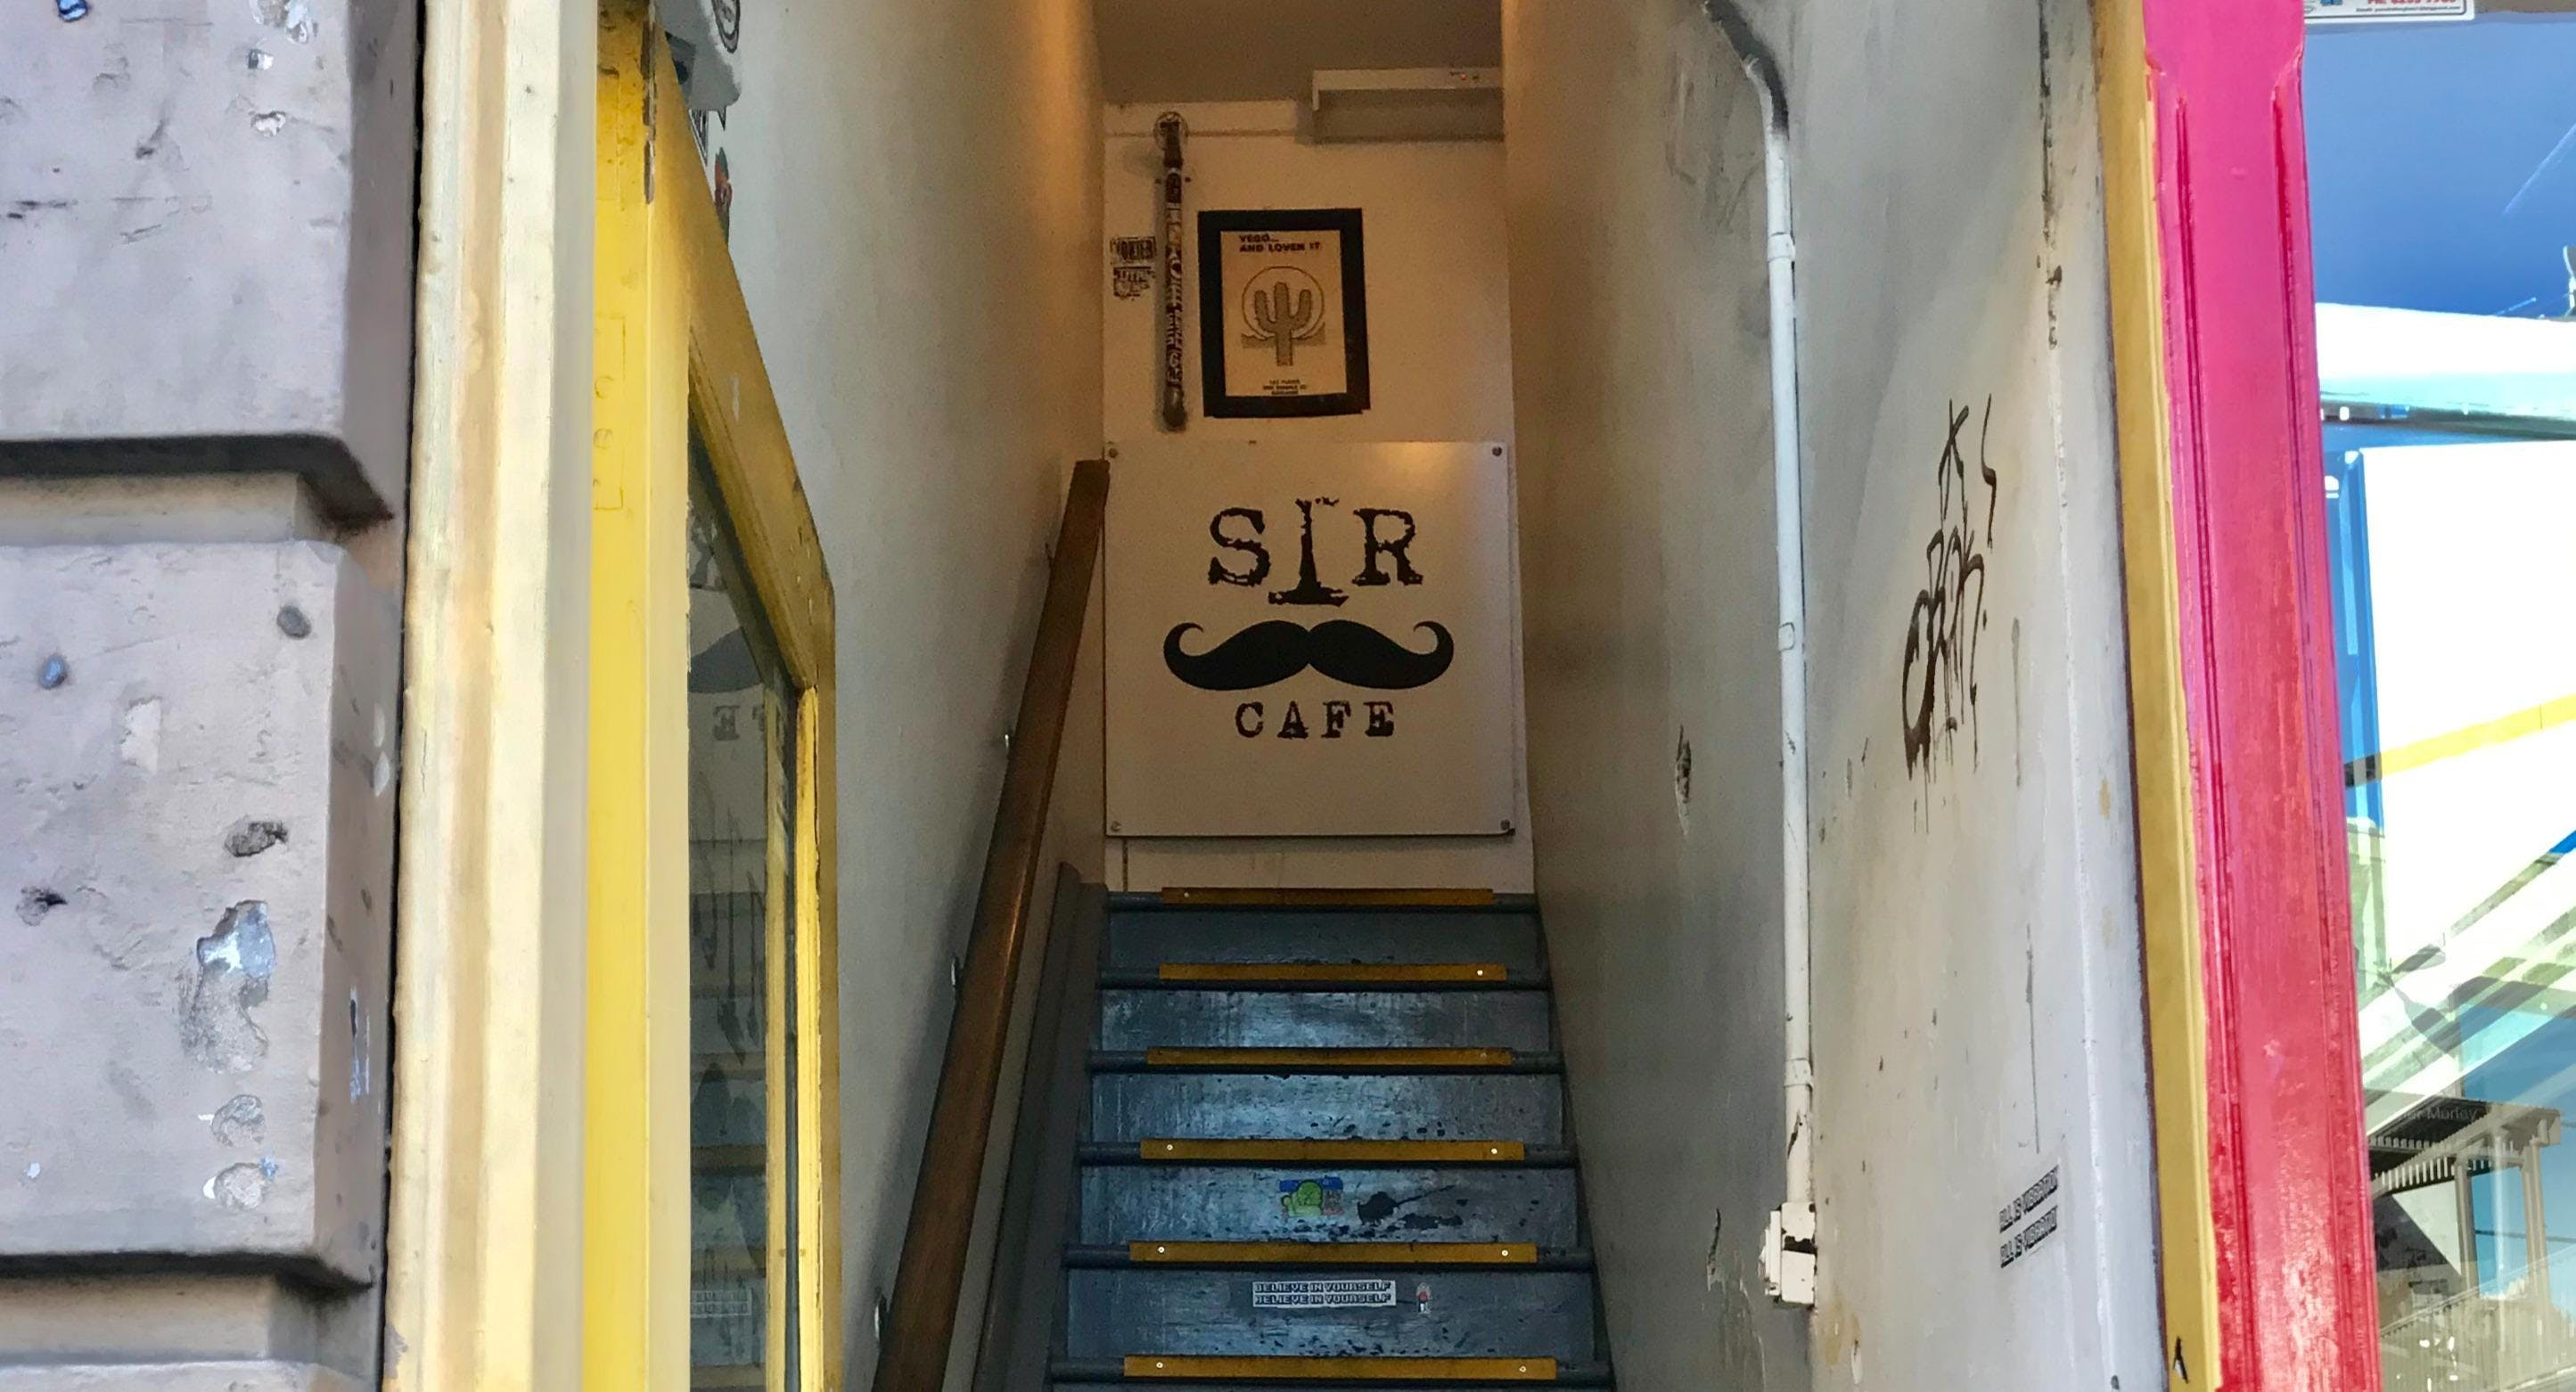 Sir Cafe & Bar Adelaide image 3